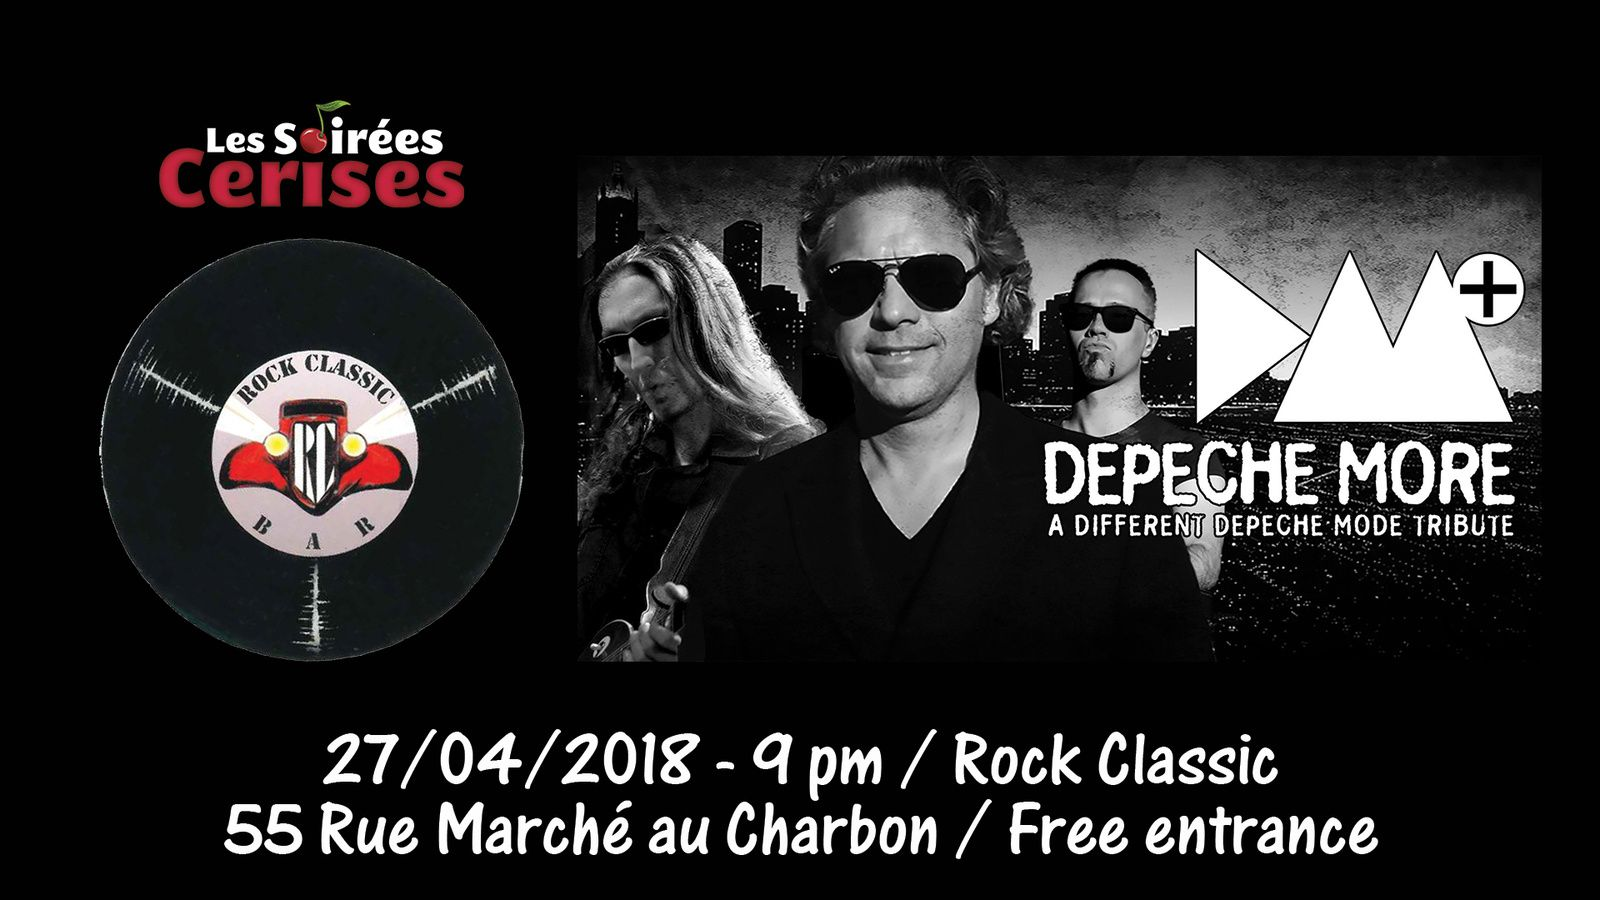 ▶ Depeche More (DEPECHE MODE tribute band) @ Rock Classic - 27/04/2018 - 21h00 - Entrée gratuite / Free entrance